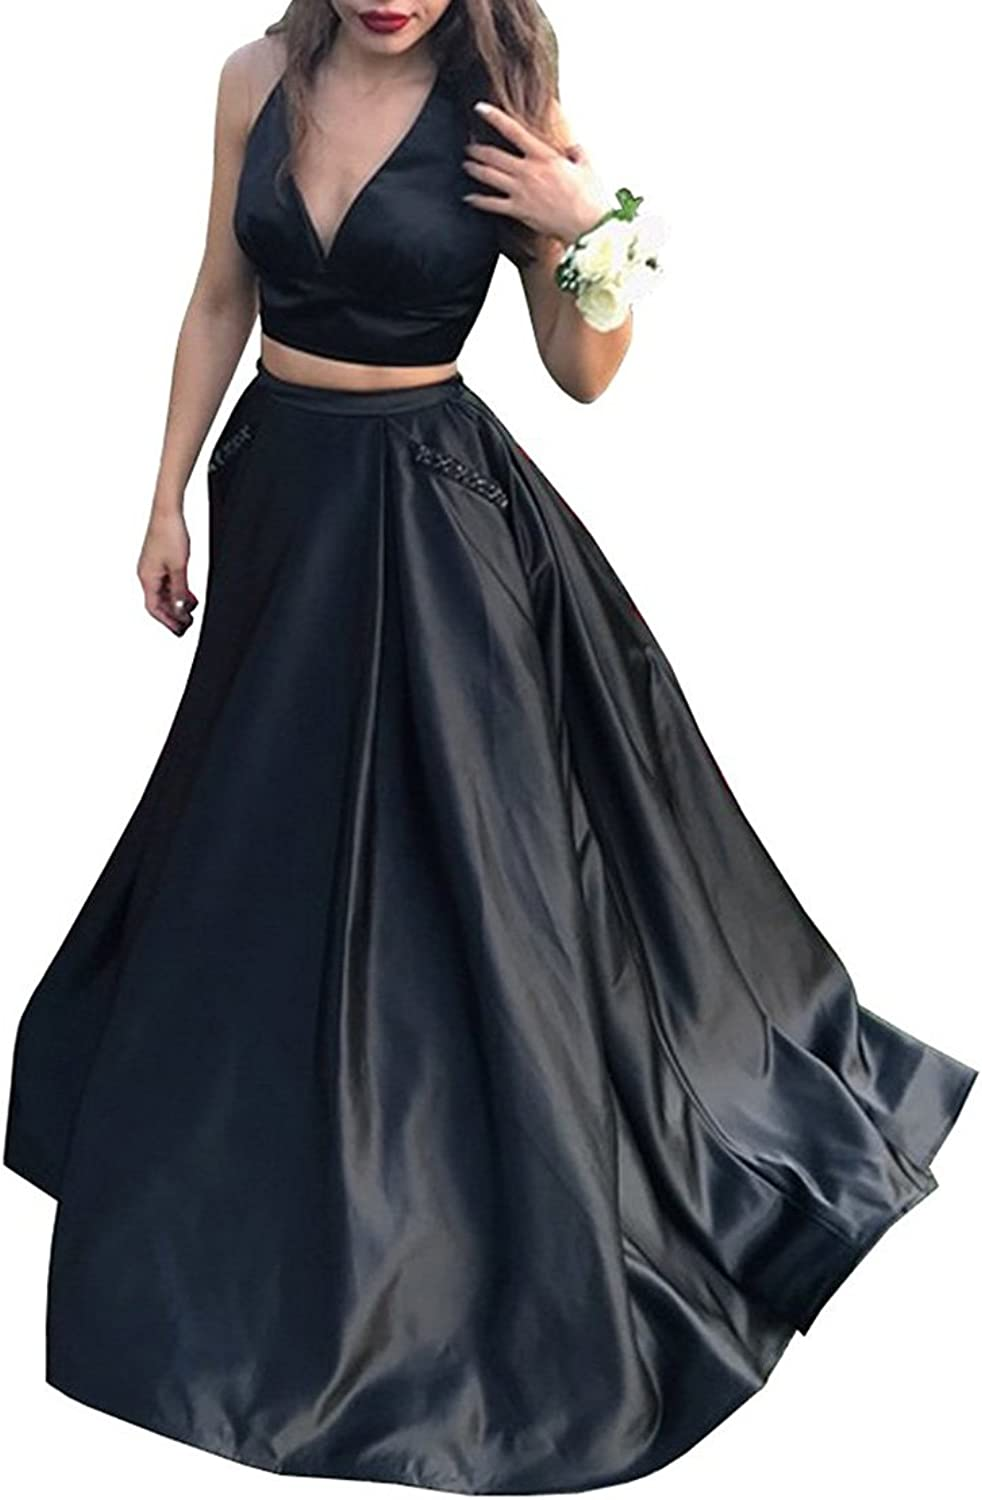 CCBubble 2 Piece Prom Dresses 2018 Satin V Neck Evening Party Dresses